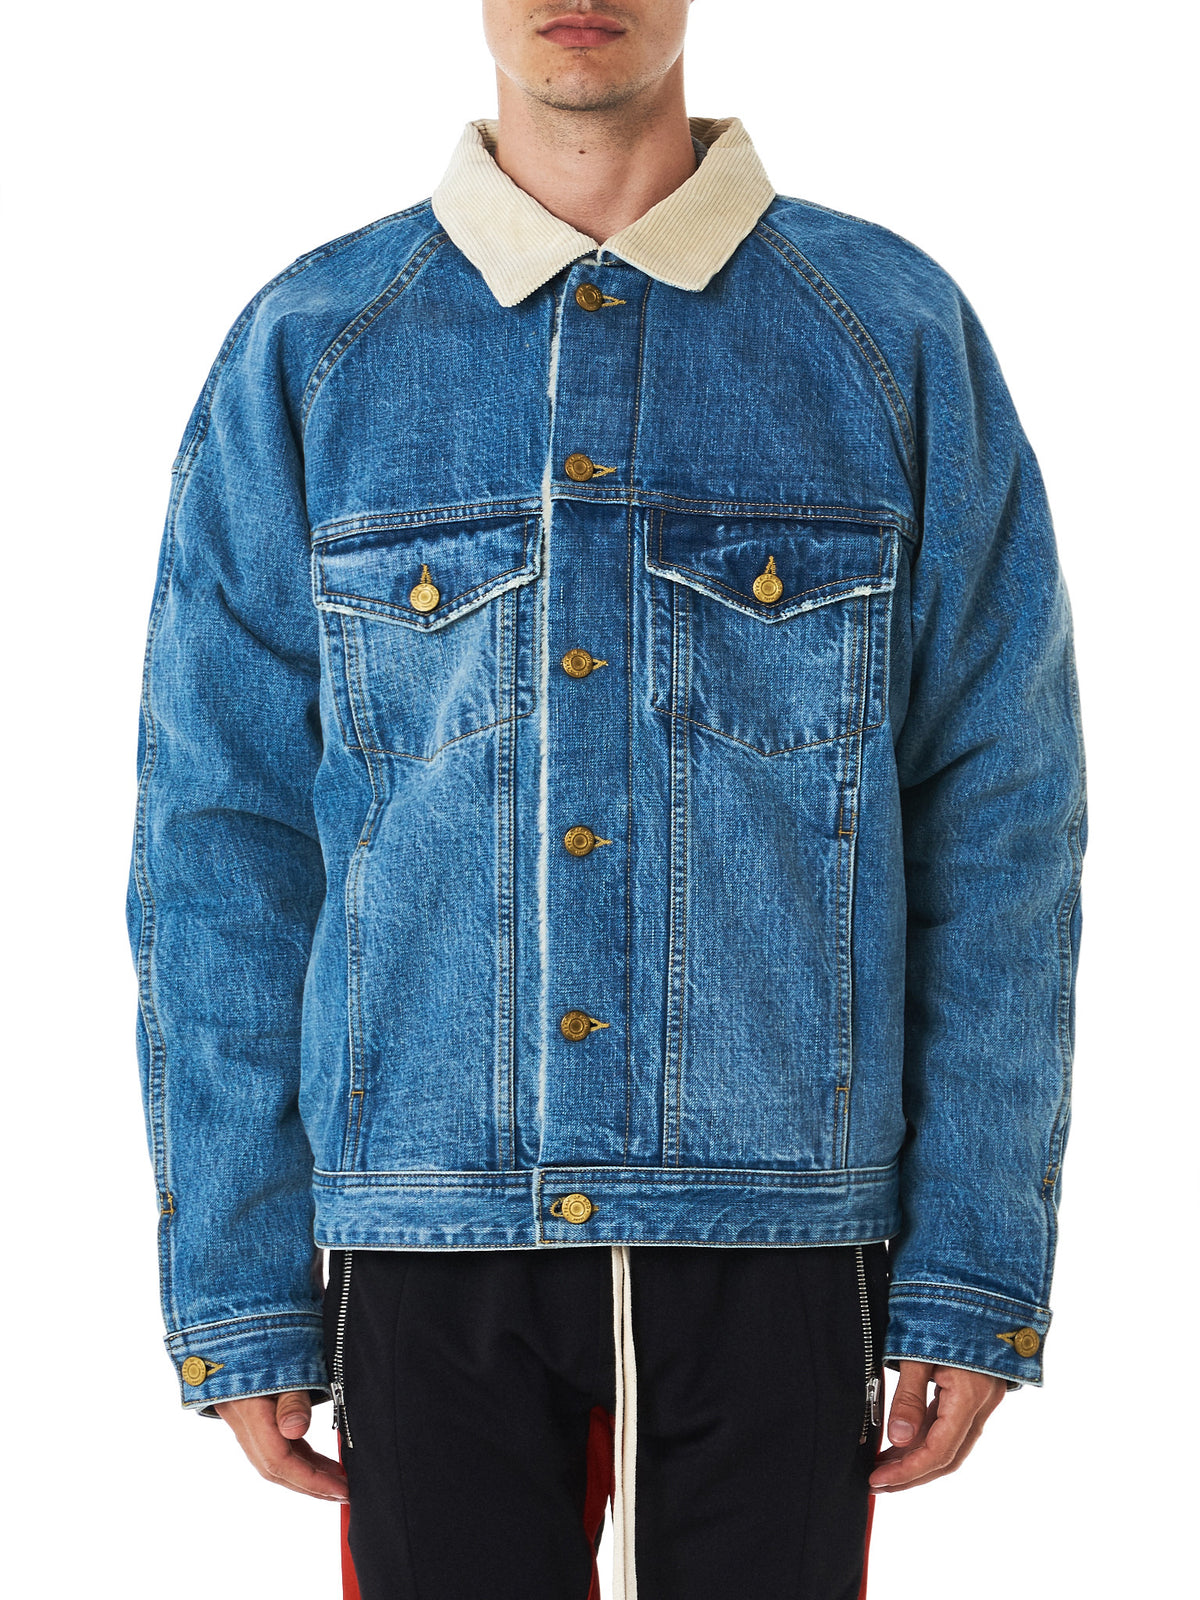 Fear of God denim jacket front view